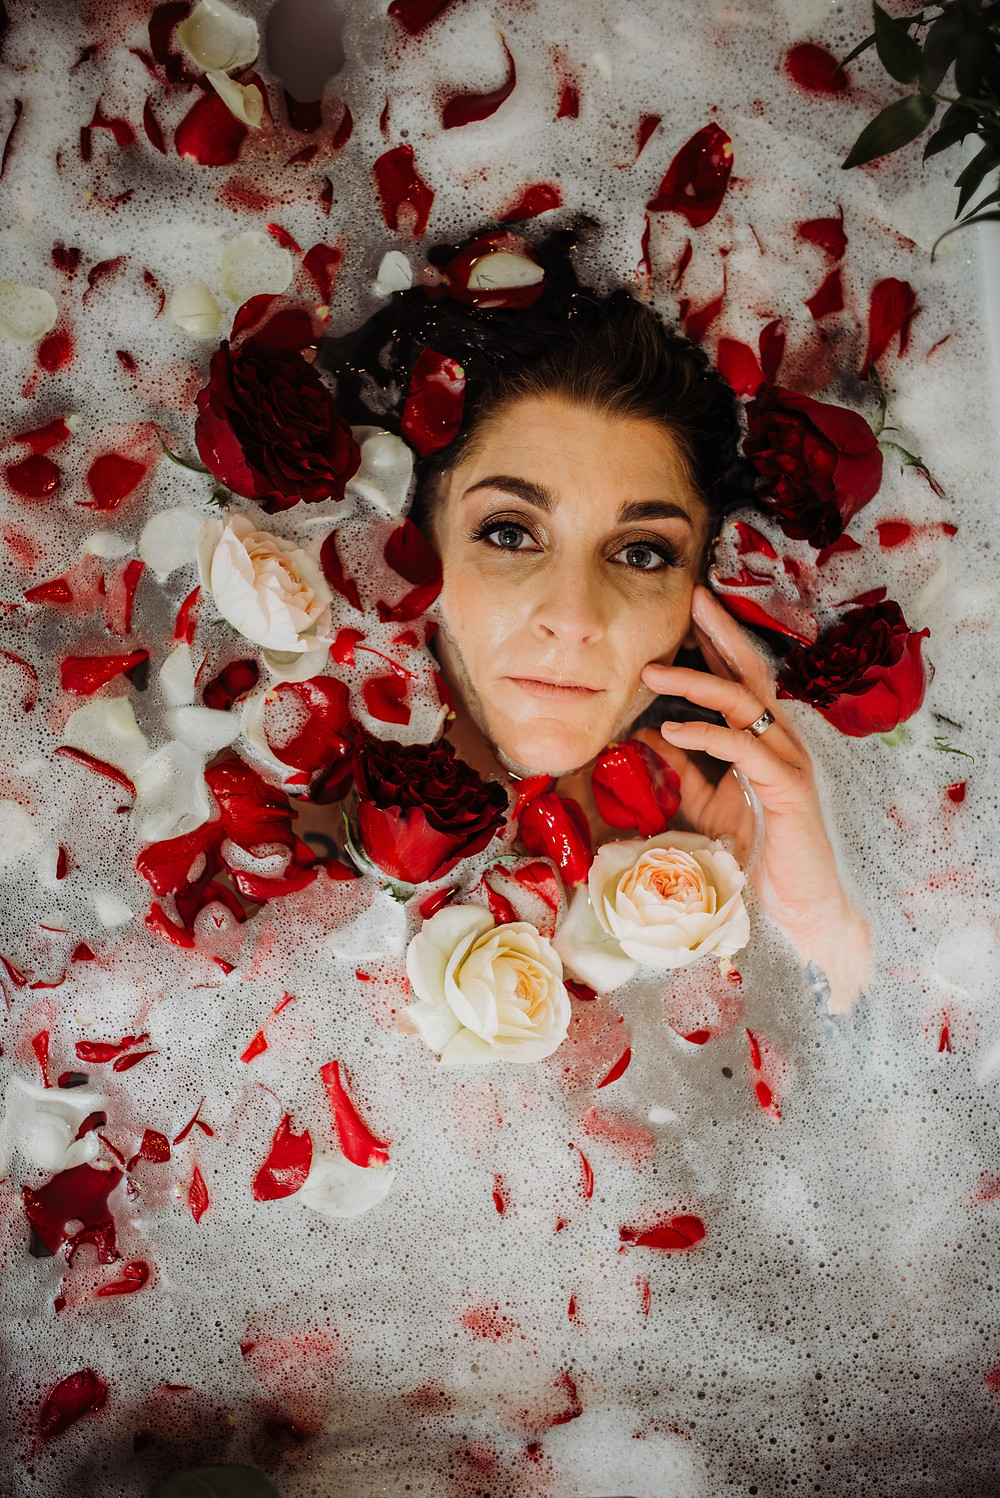 bubble bath roses boudoir paradis photography